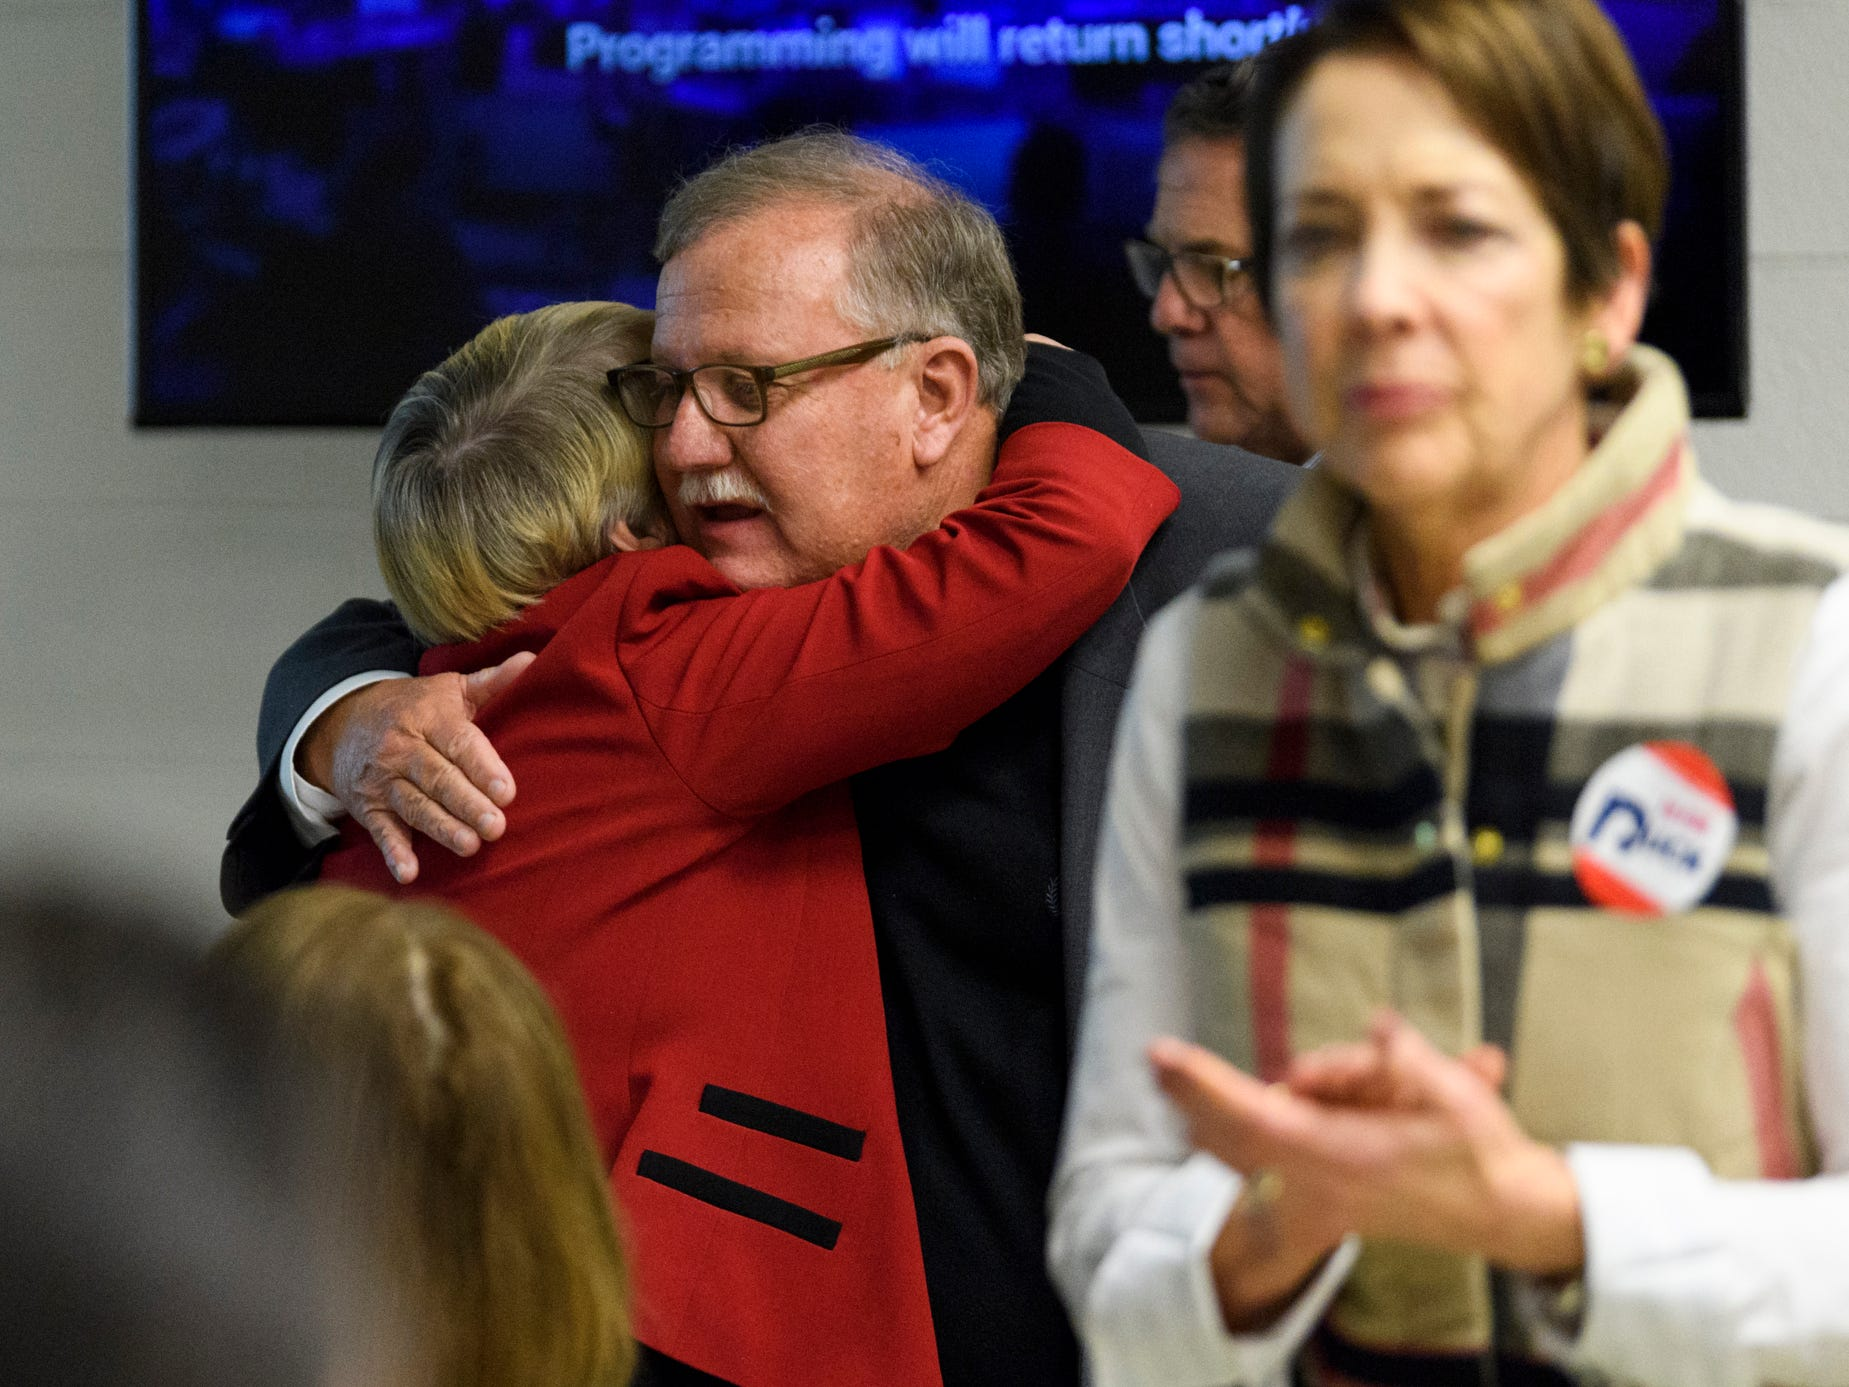 Mike Duckworth, center, is embraced after giving his concession speech to the Republican watch party at the C K Newsome Community Center in Evansville, Ind., Tuesday, Nov. 6, 2018. He lost the Vanderburgh County Commissioners seat to Democrat Jeff Hatfield by only 219 votes.